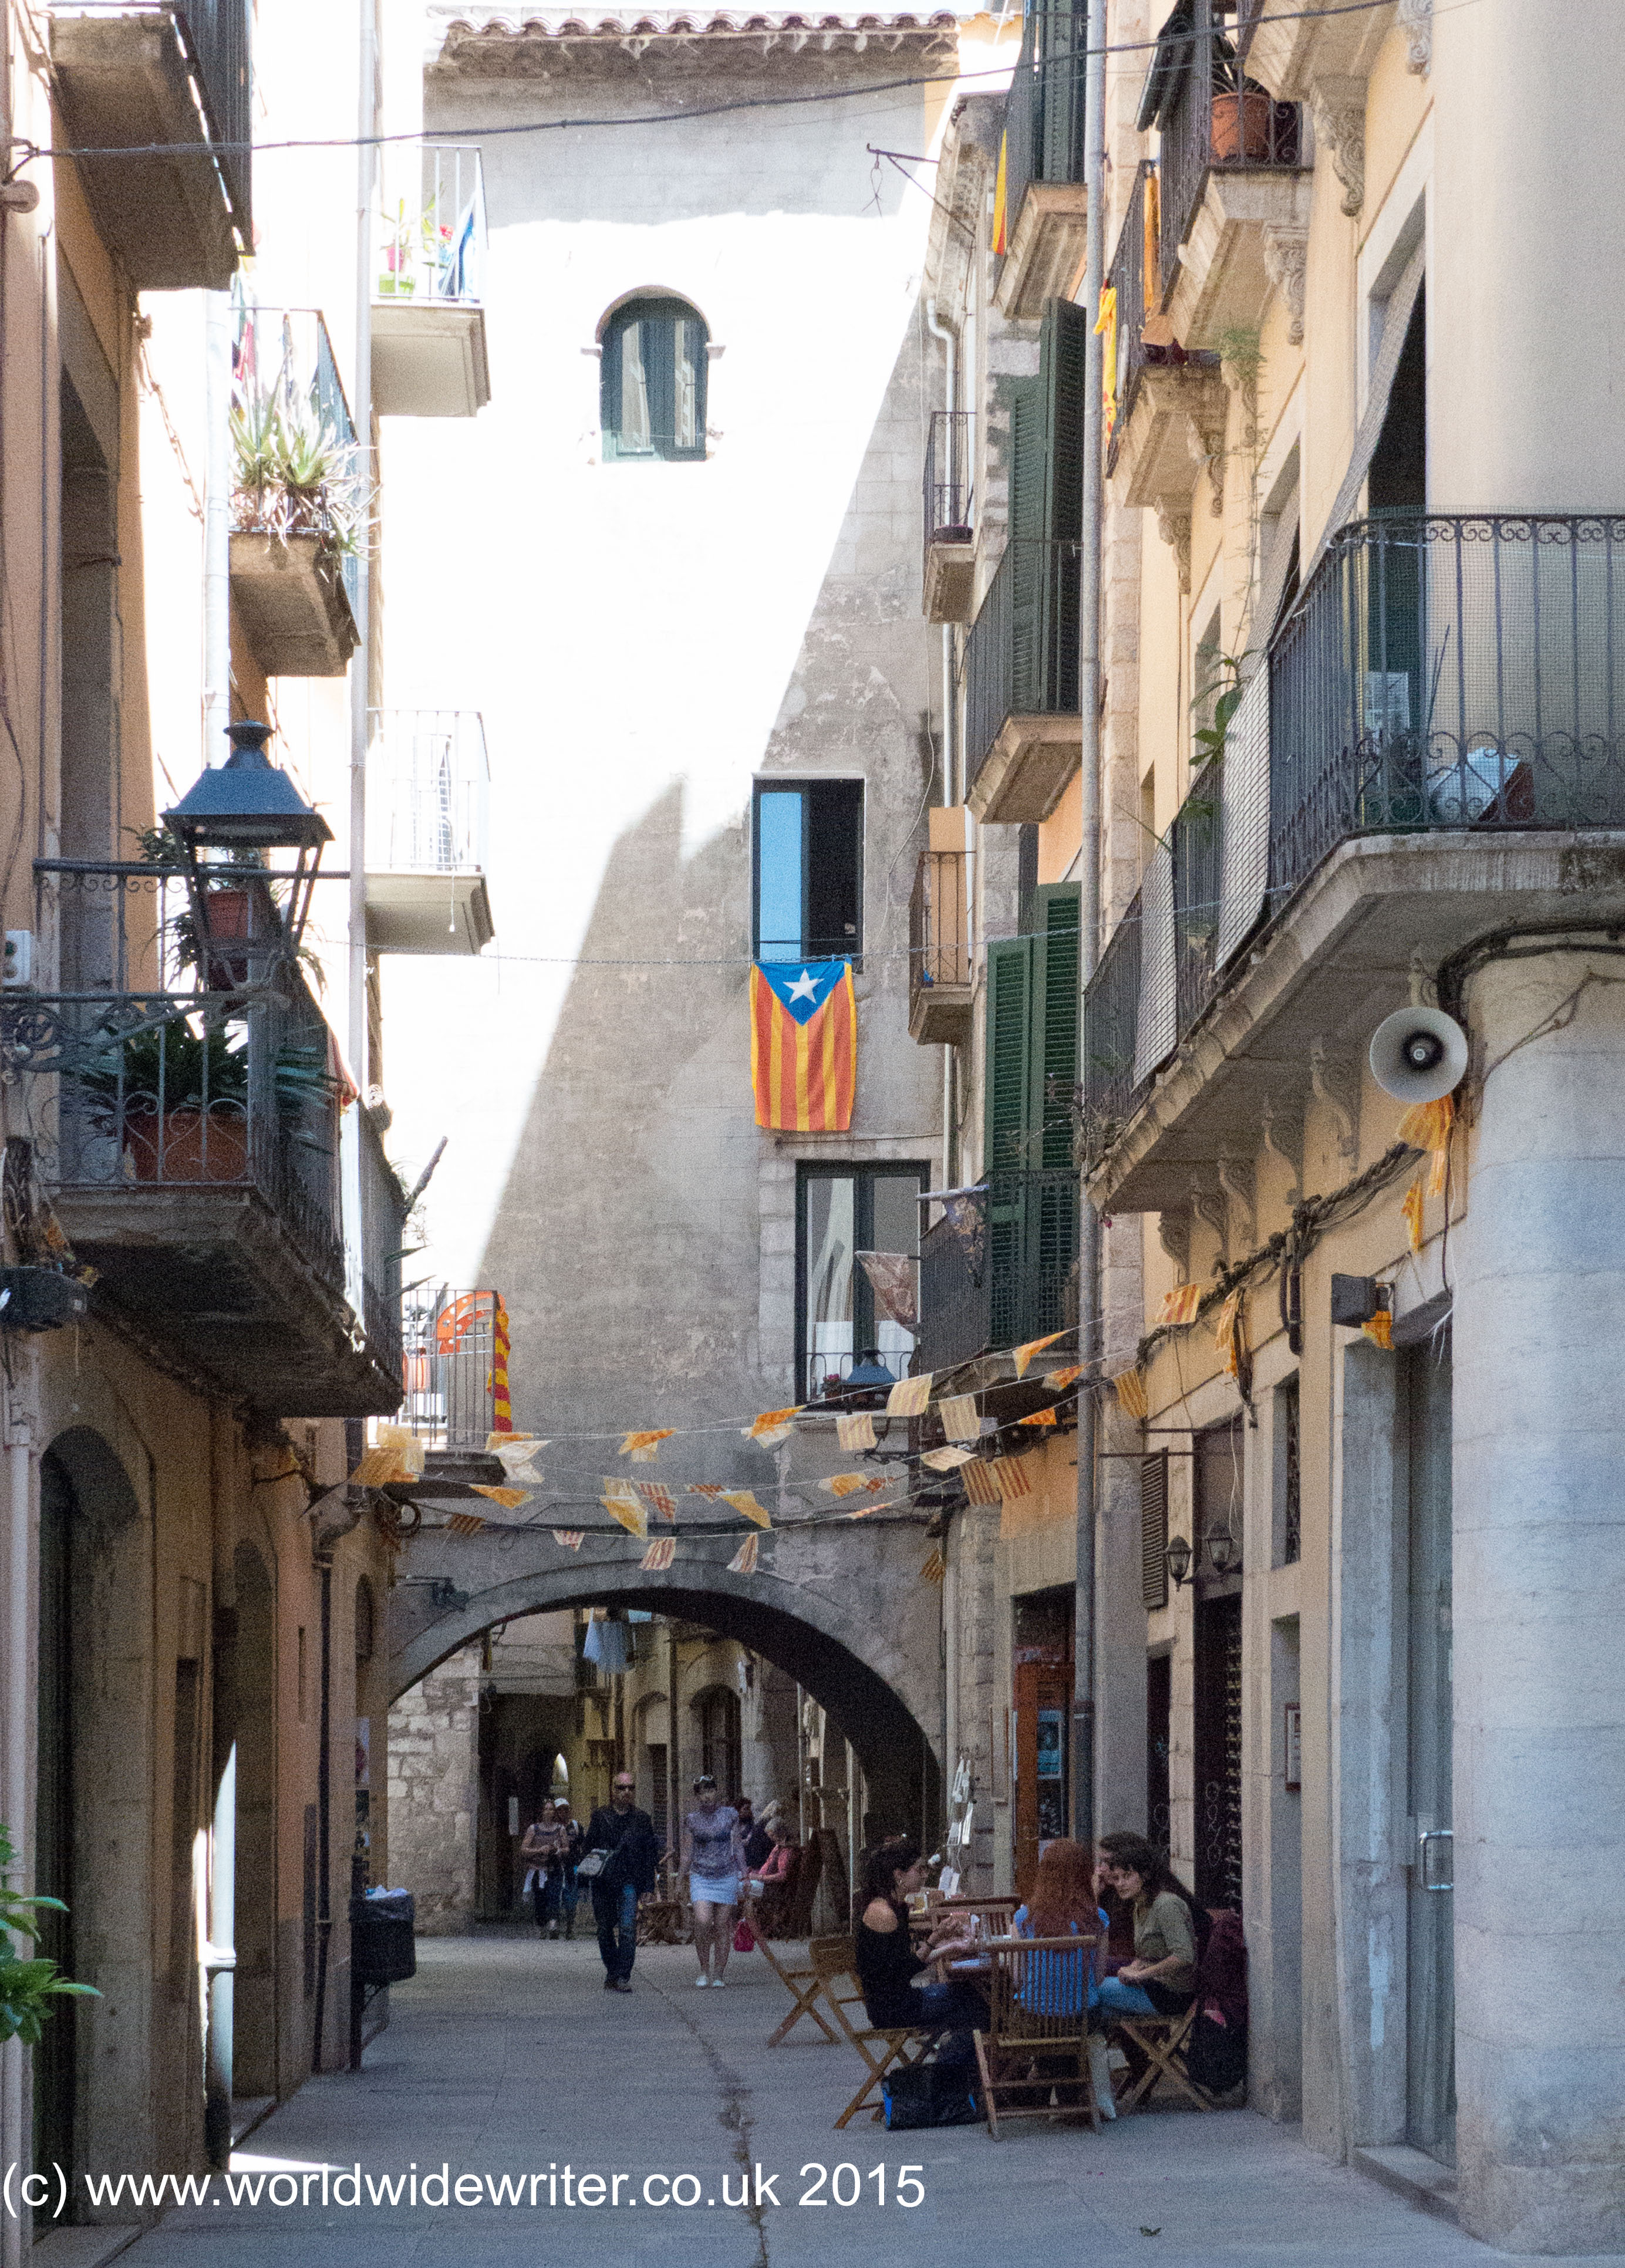 The Old Hermit: The Old Town And Walls Of Girona, Costa Brava